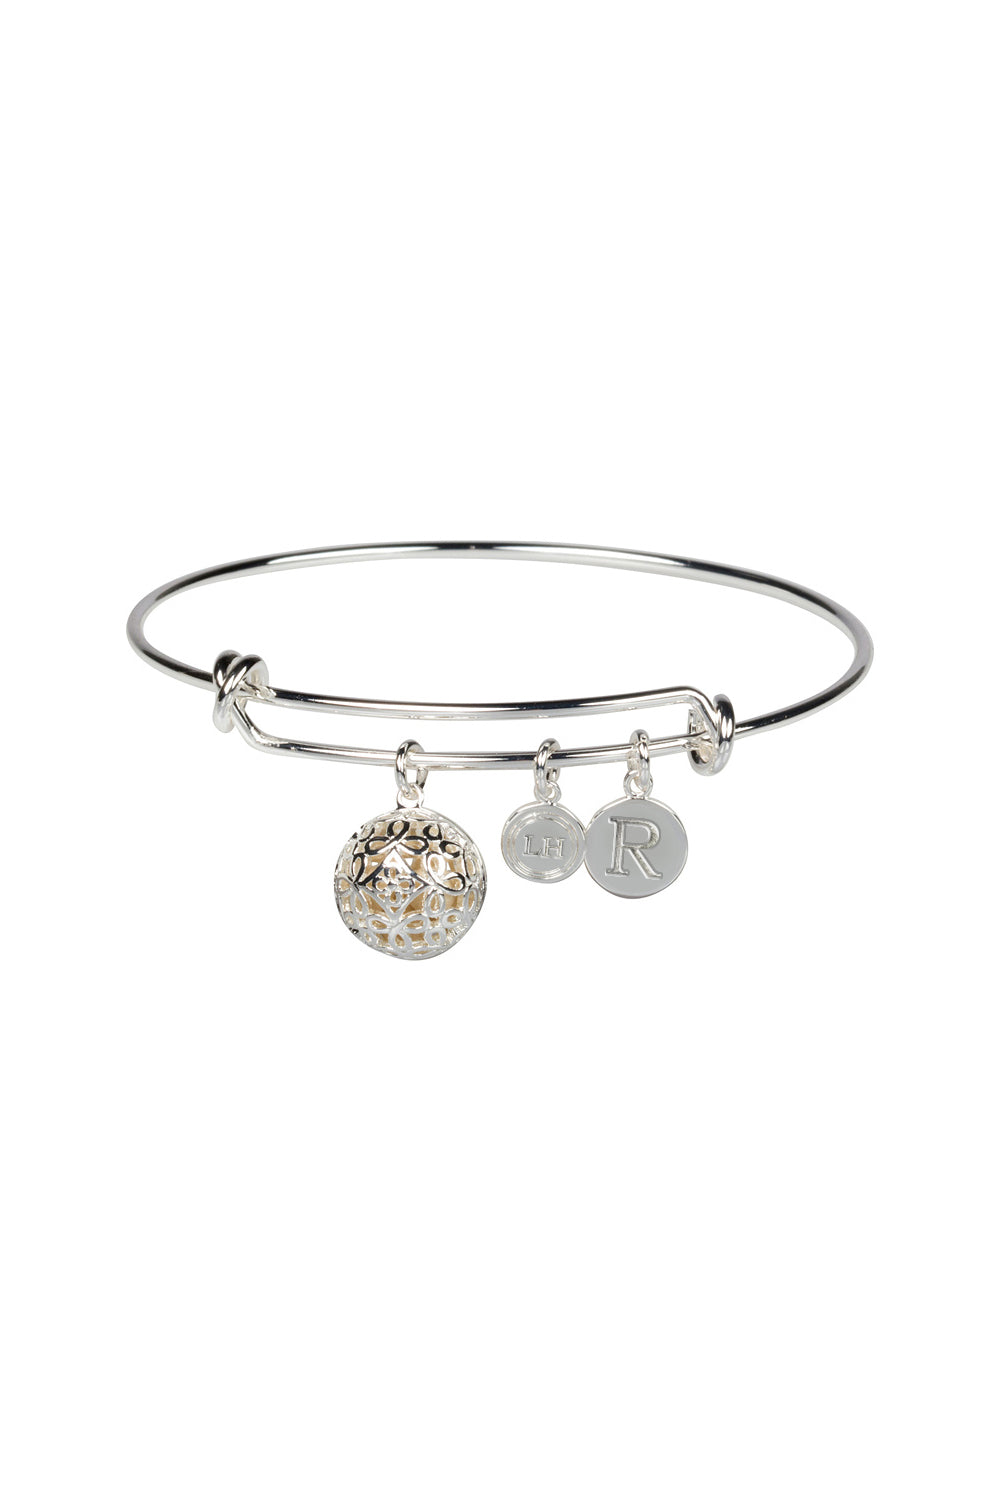 """R"" Initial Fragrance Bangle with Silver Tone Charm"